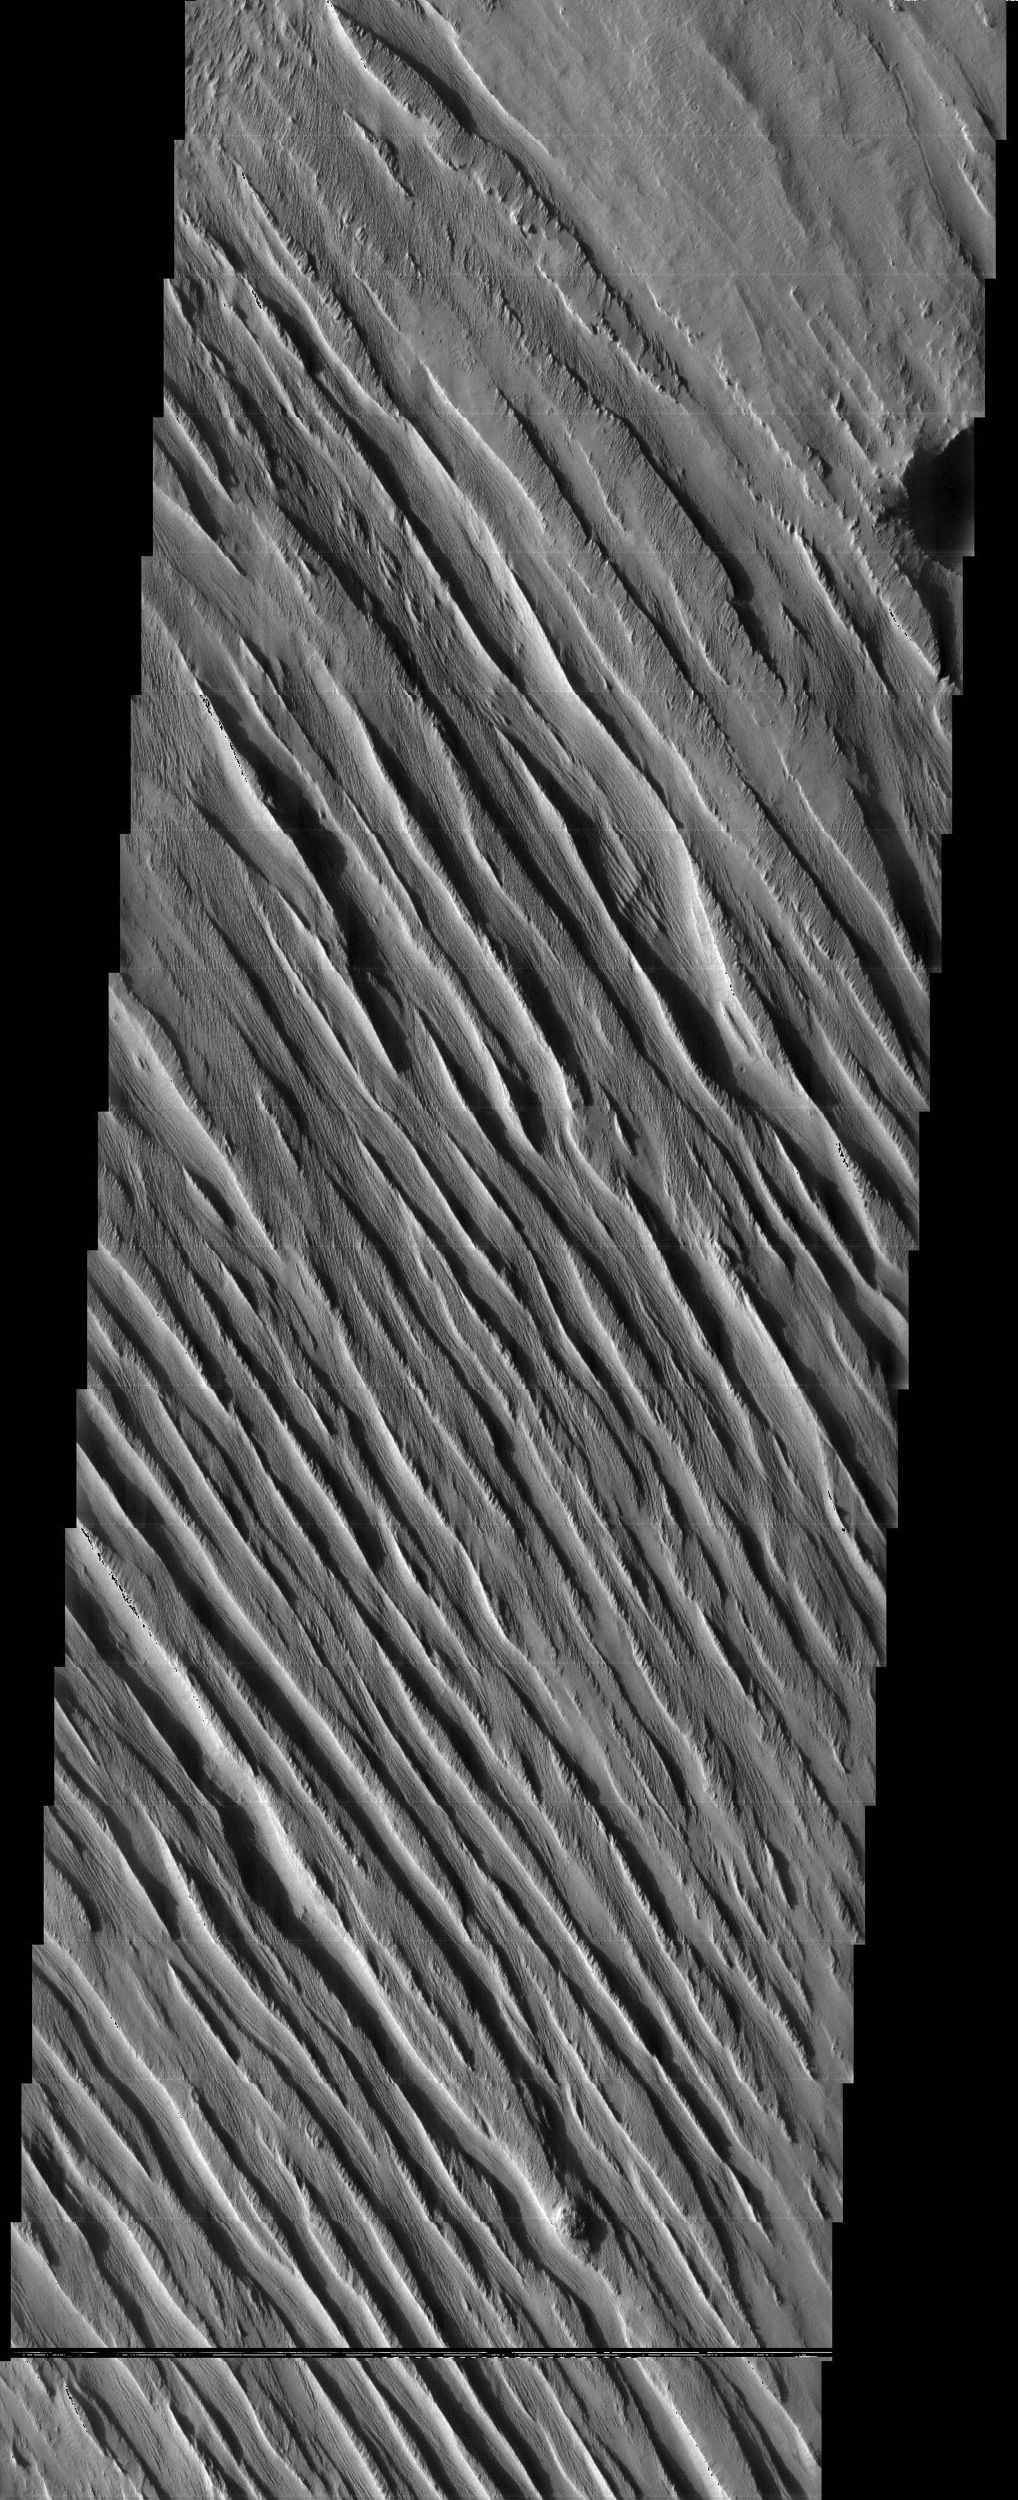 The wind-sculpted yardangs in this scene from NASA's Mars Odyssey spacecraft are part of the Medusae Fossae Formation, a regionally extensive geologic unit that probably was produced from the accumulation of volcanic ash.